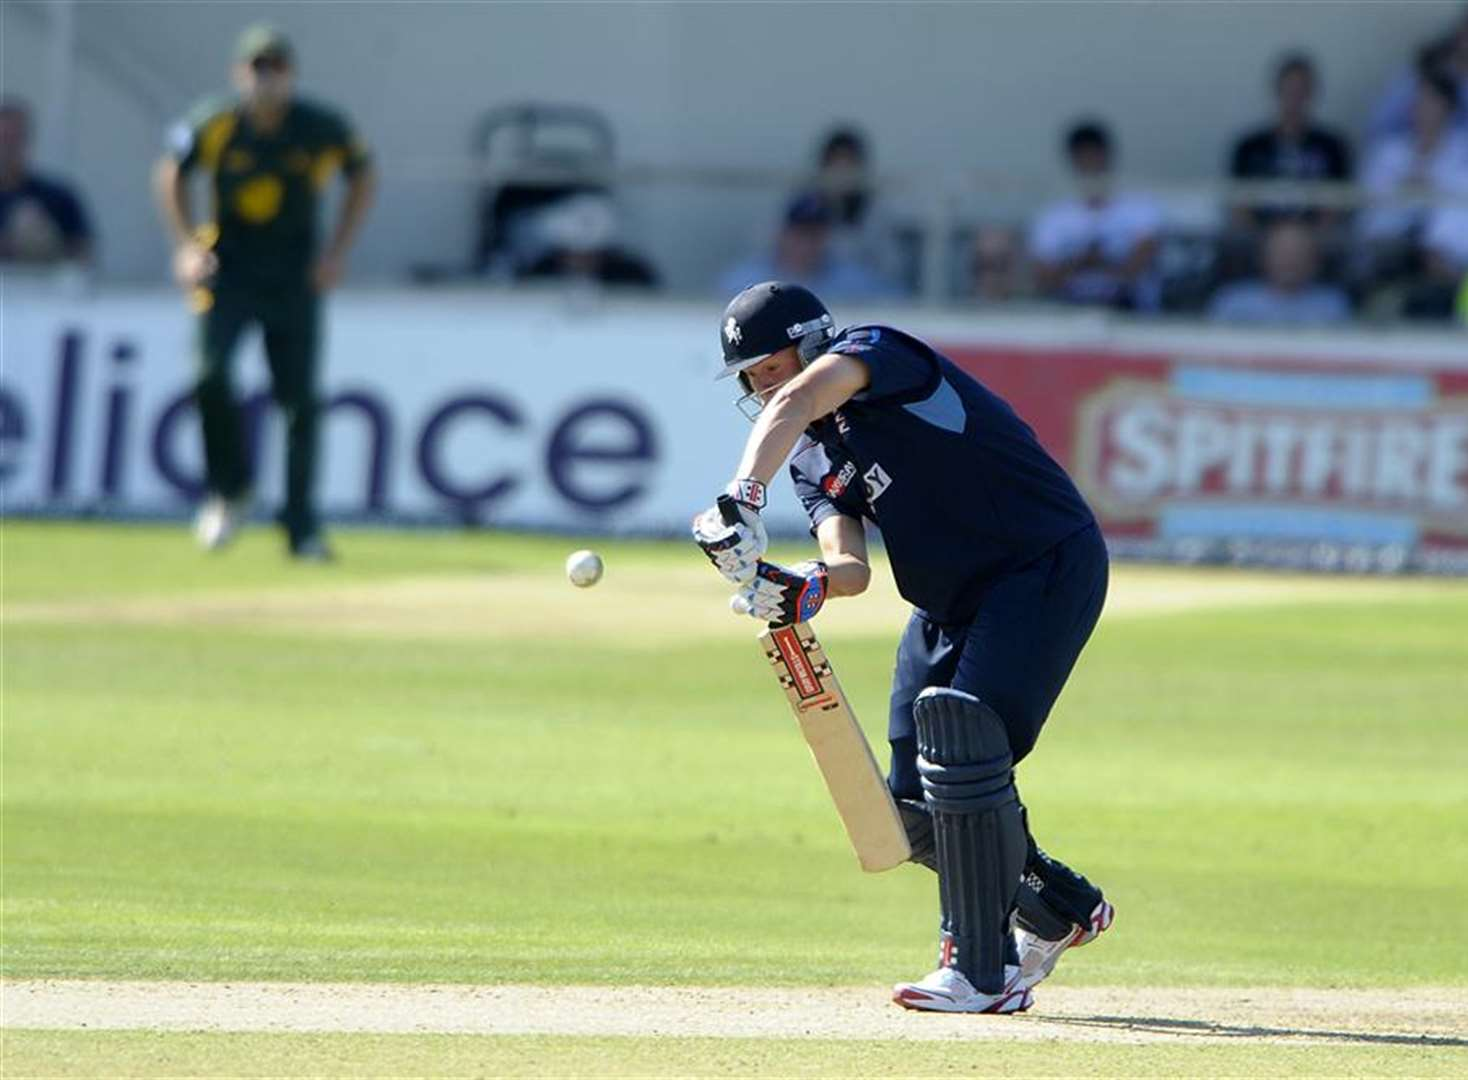 Record-breaking Cowdrey eyes Kent place after return from Oz